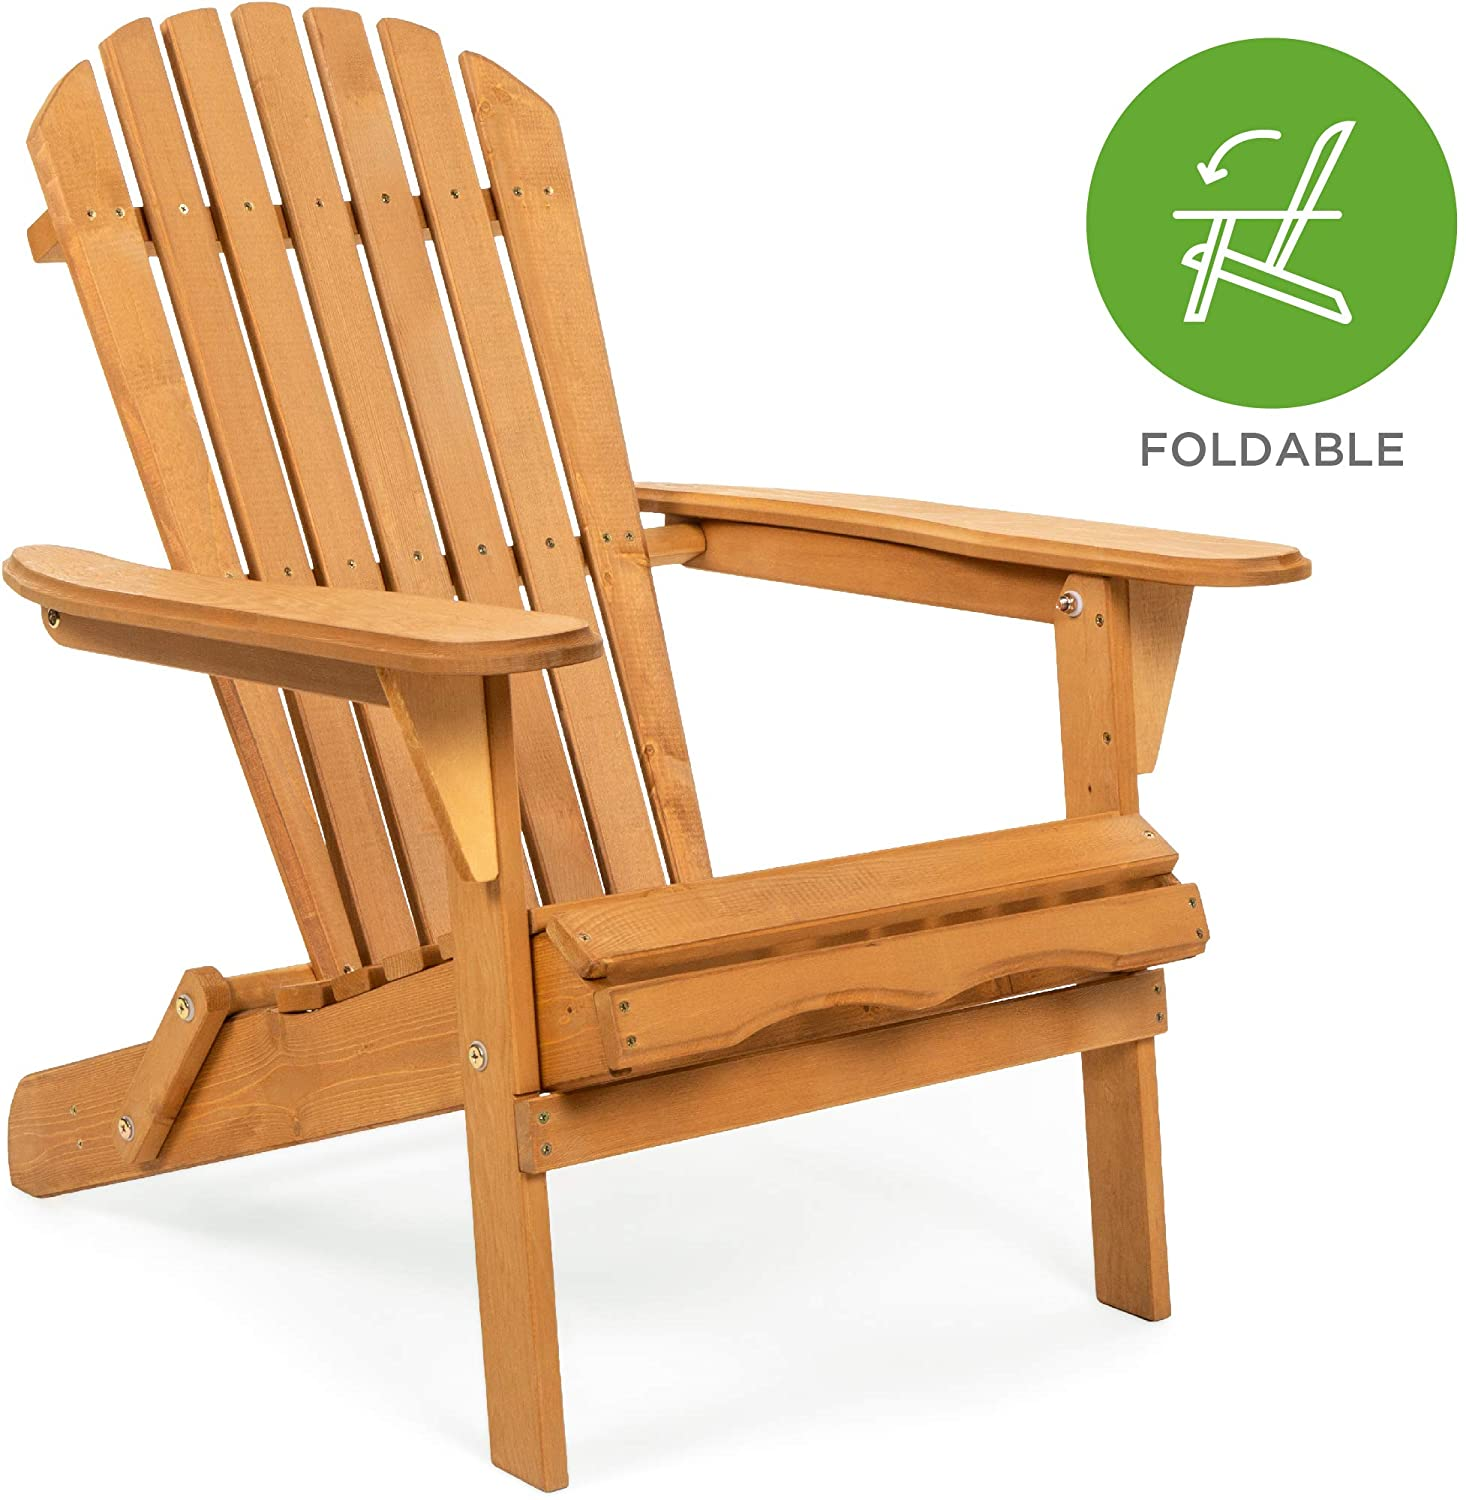 Review of Best Choice Products Folding Wood Adirondack Chair